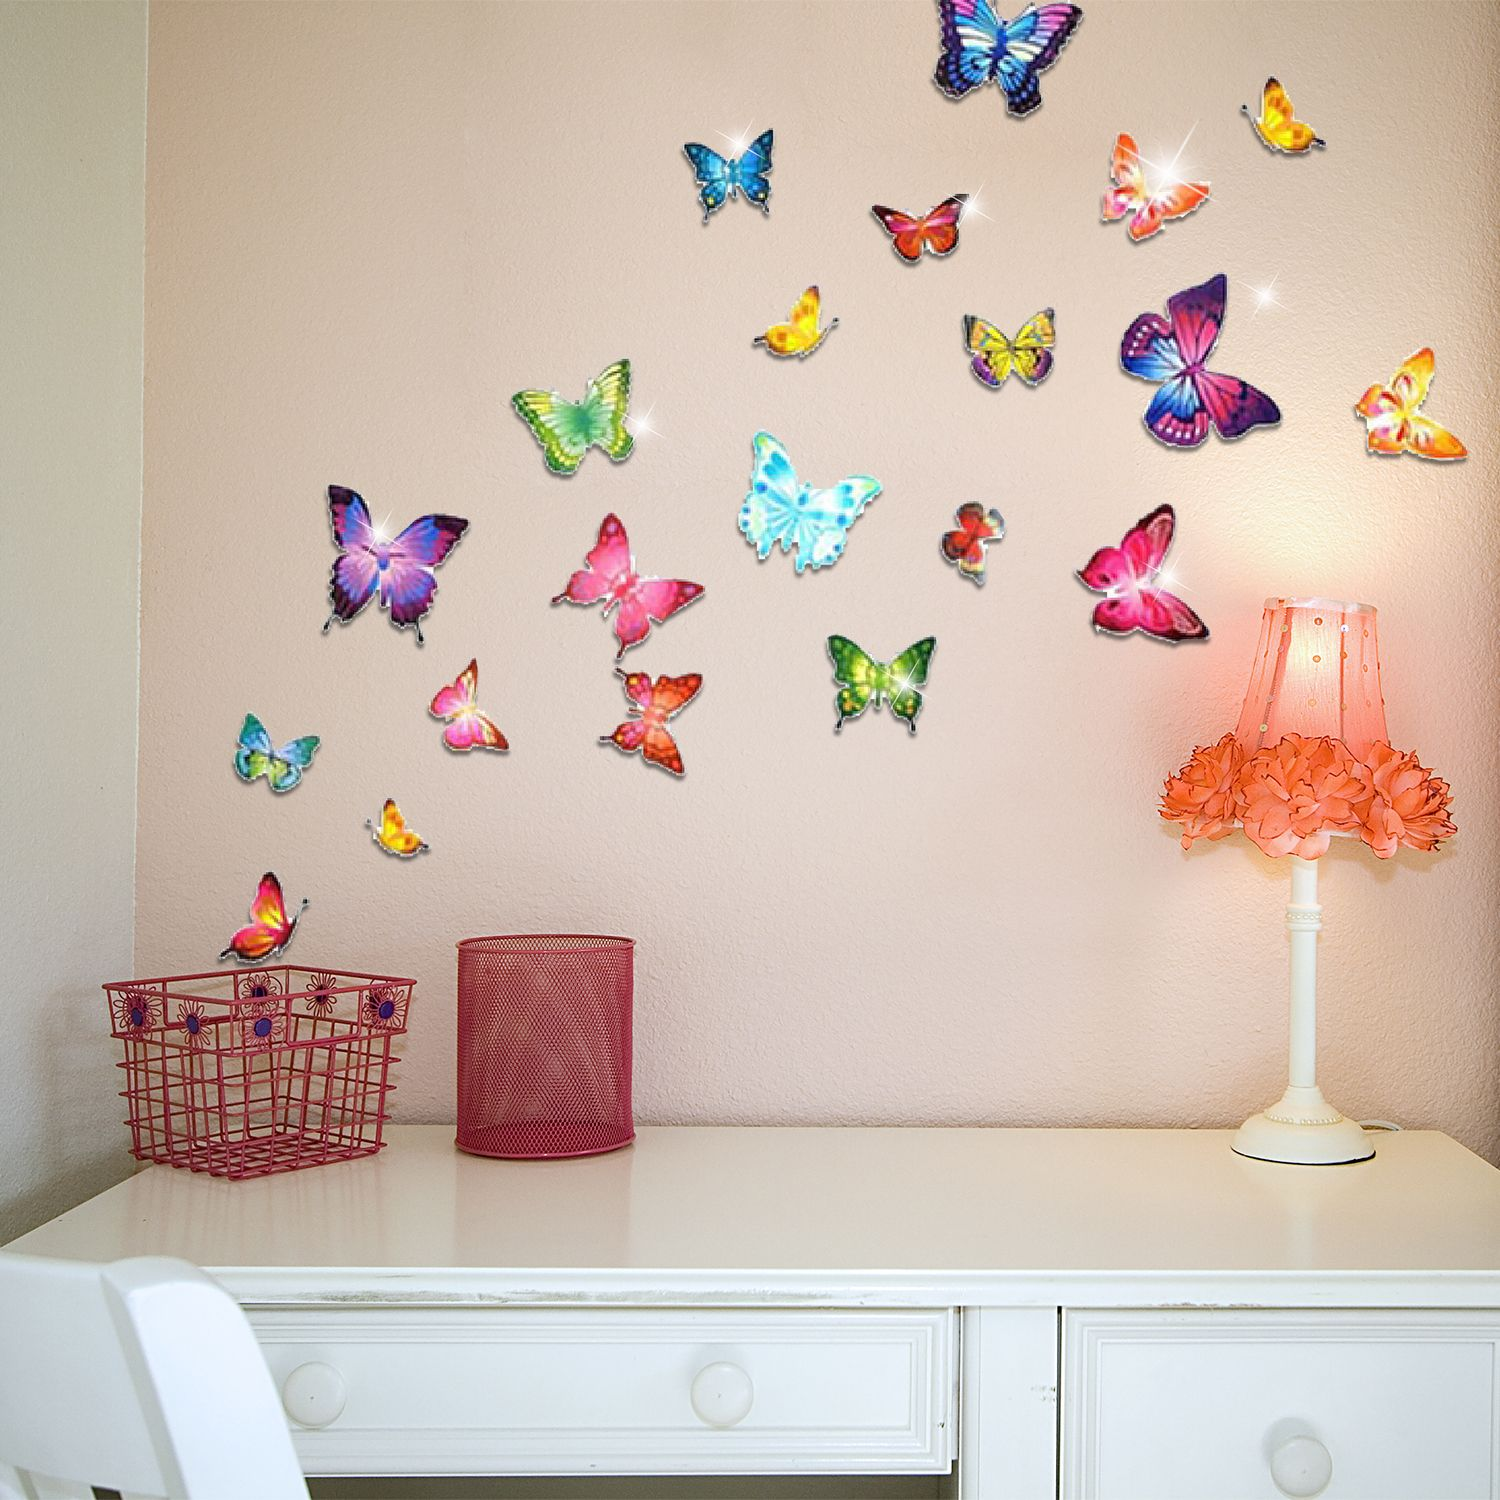 Wall Sticker Decal Colourful Butterflies with Swarovski Crystals